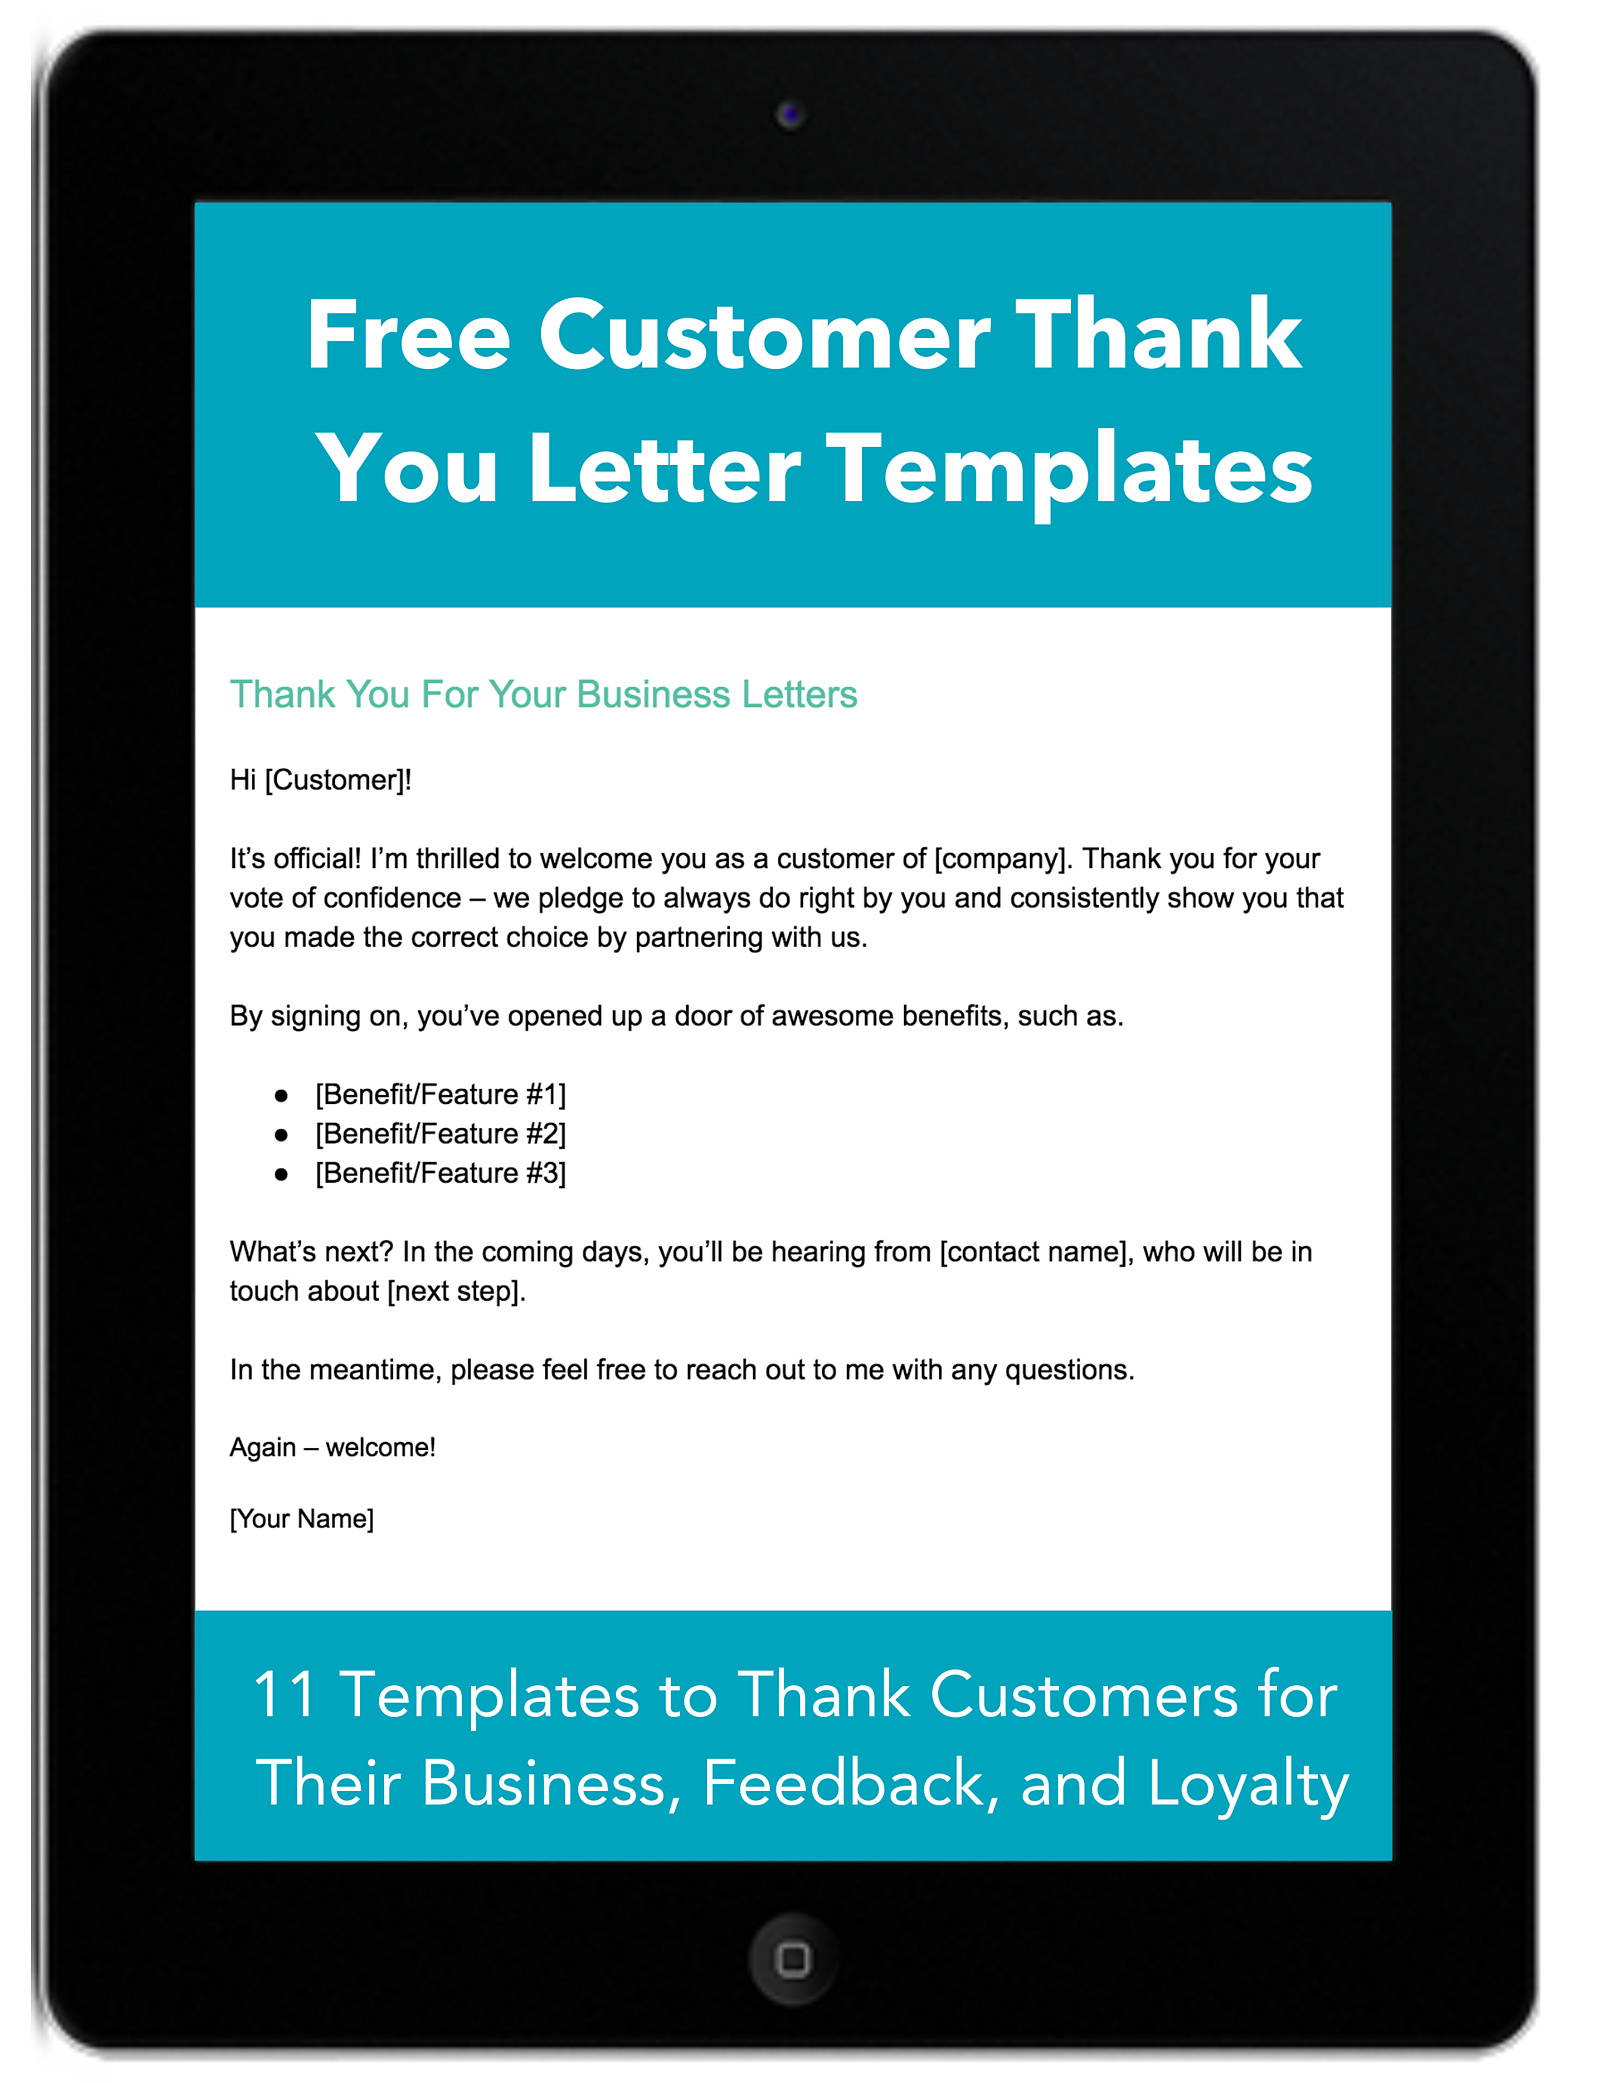 Customer Thank You Letter Templates